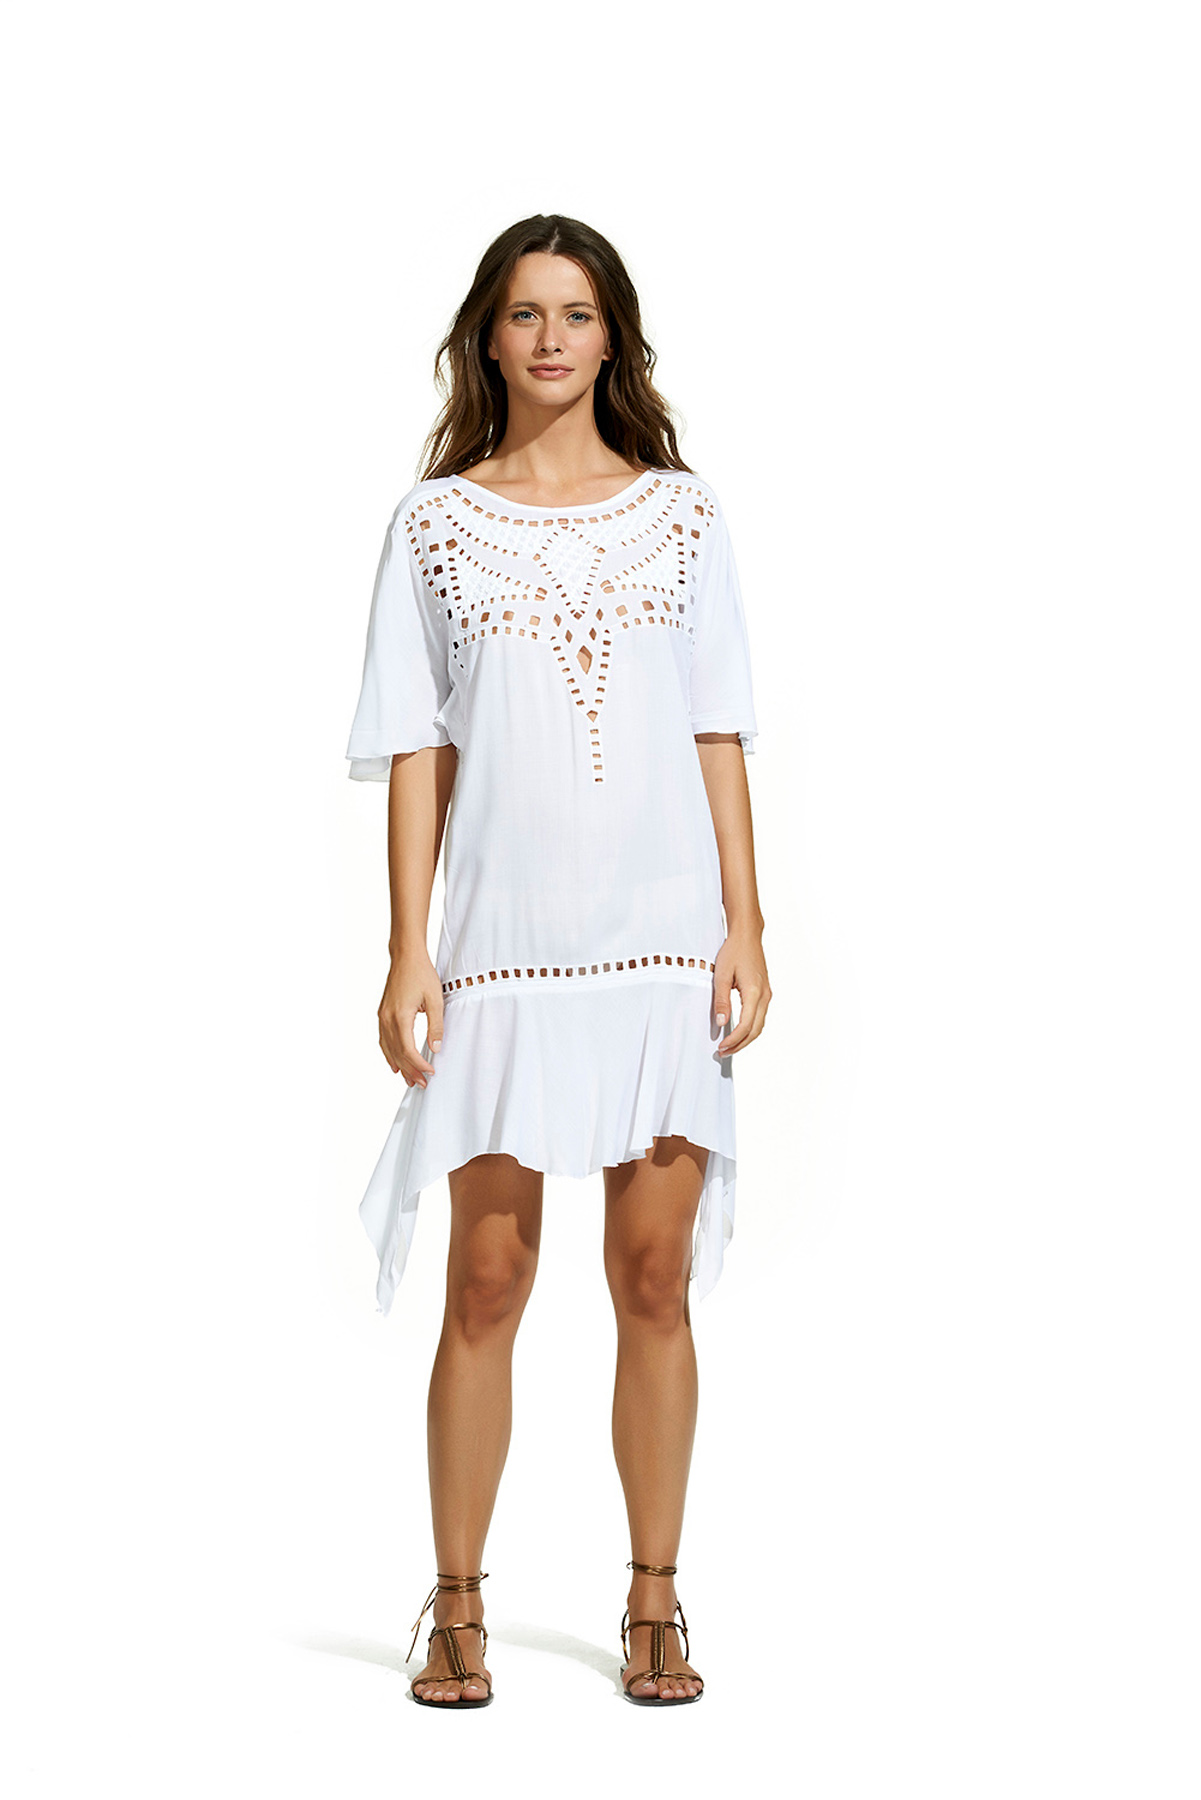 25-white-gabi-caftan-vs172073-2-copiar